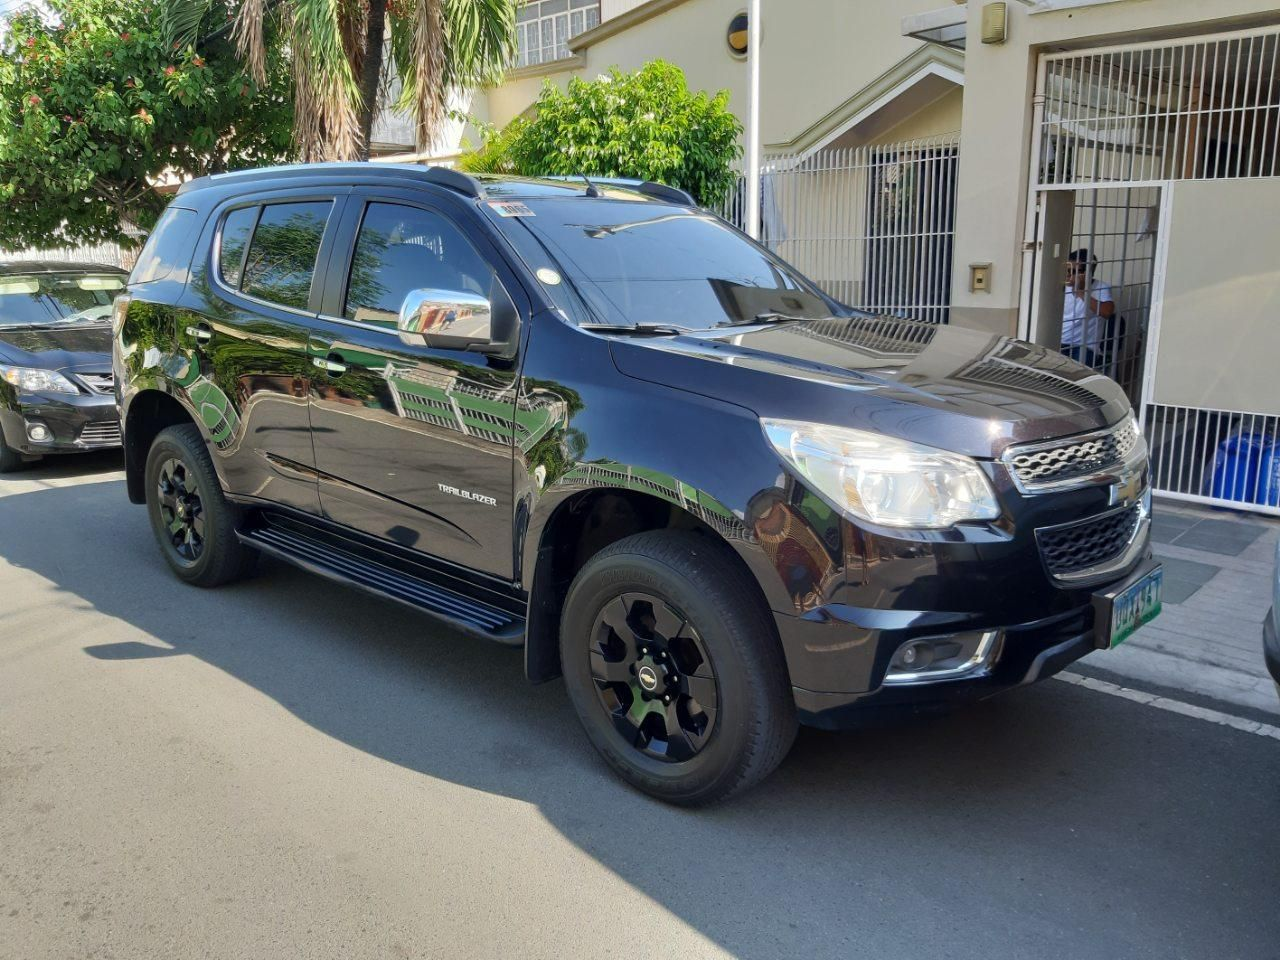 2013 Chevrolet Trailblazer Ltz 4x4 Chevrolet Trailblazer Trailblazer Car Chevrolet